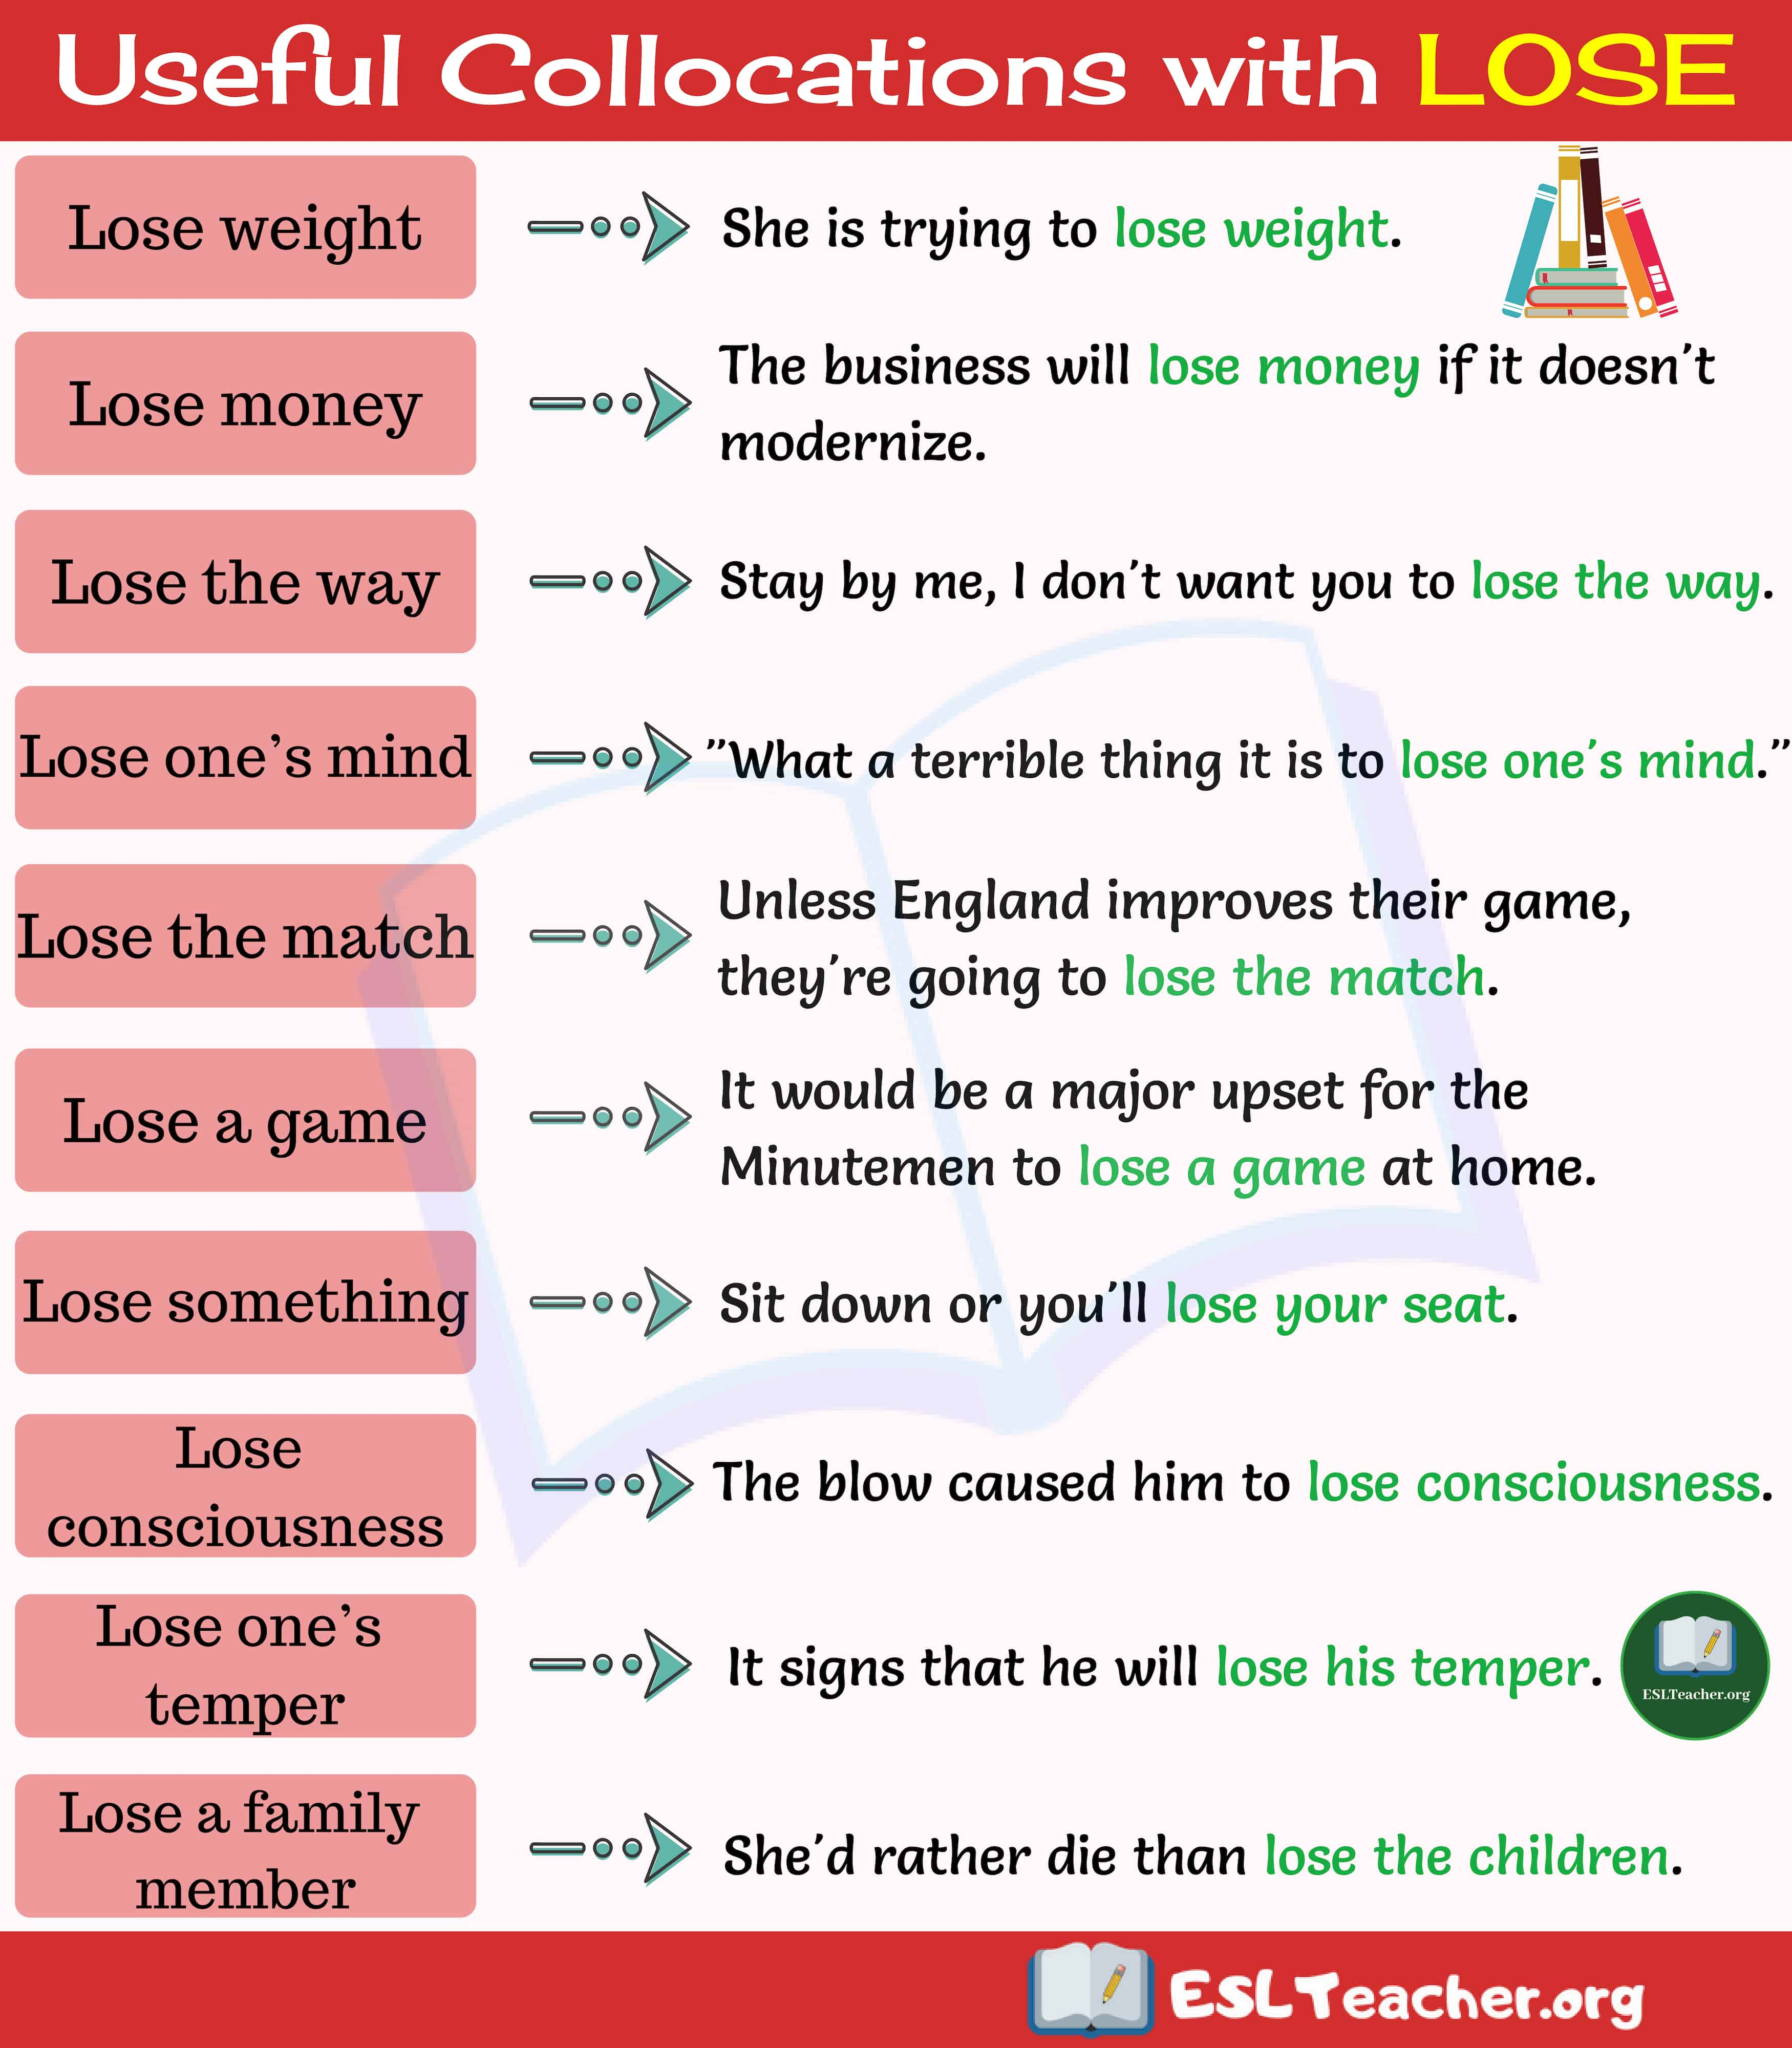 Useful Collocations with LOSE